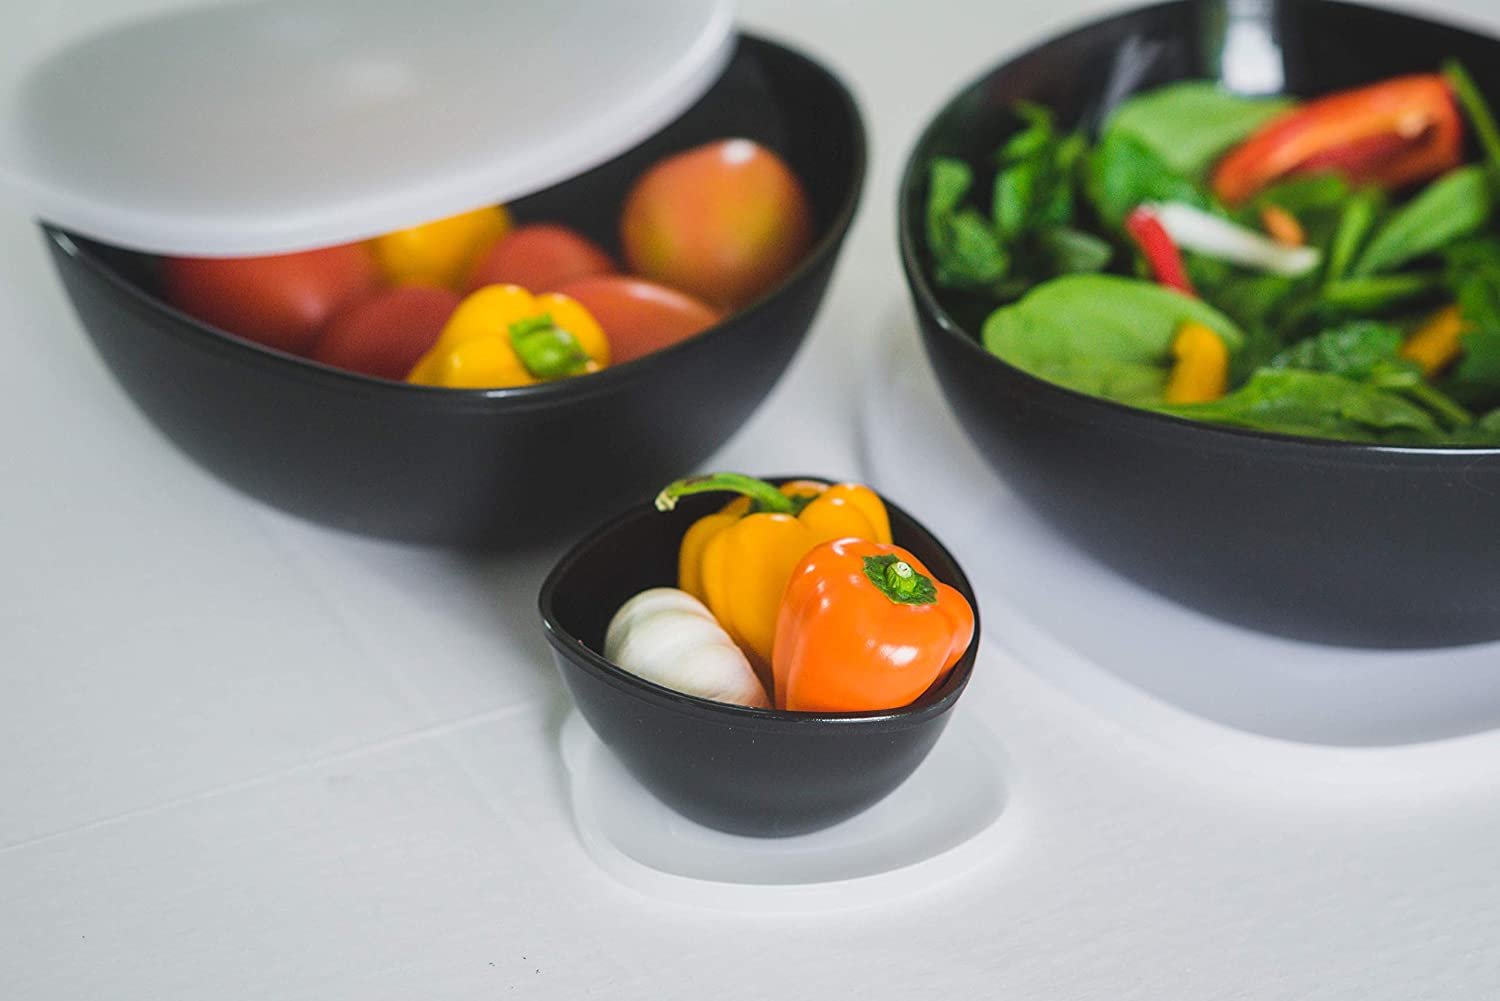 Serving Salad or Dessert with Lid- Set of 6 Coza Stackable and Unbreakable Serving Bowl for Mixing Black 3 Bowls + 3 Lids